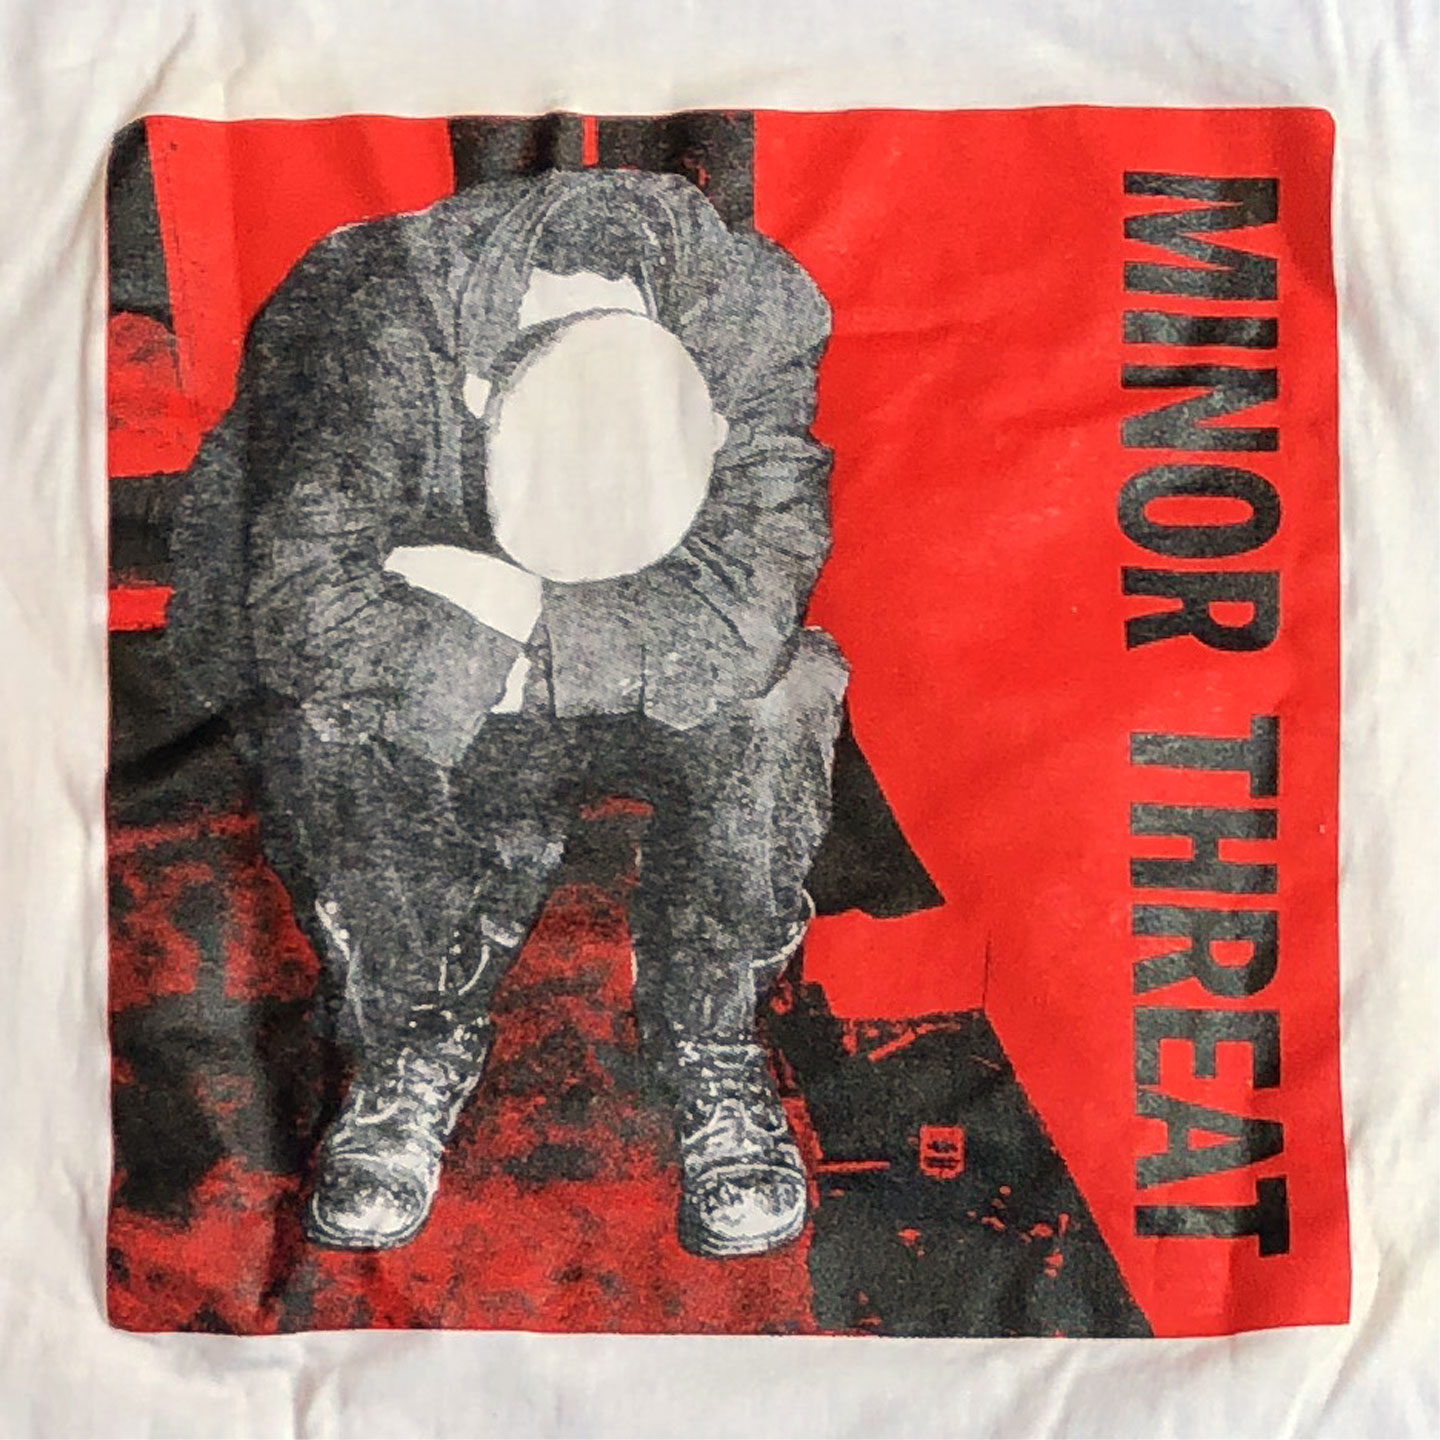 MINOR THREAT Tシャツ FRONT AND BACK